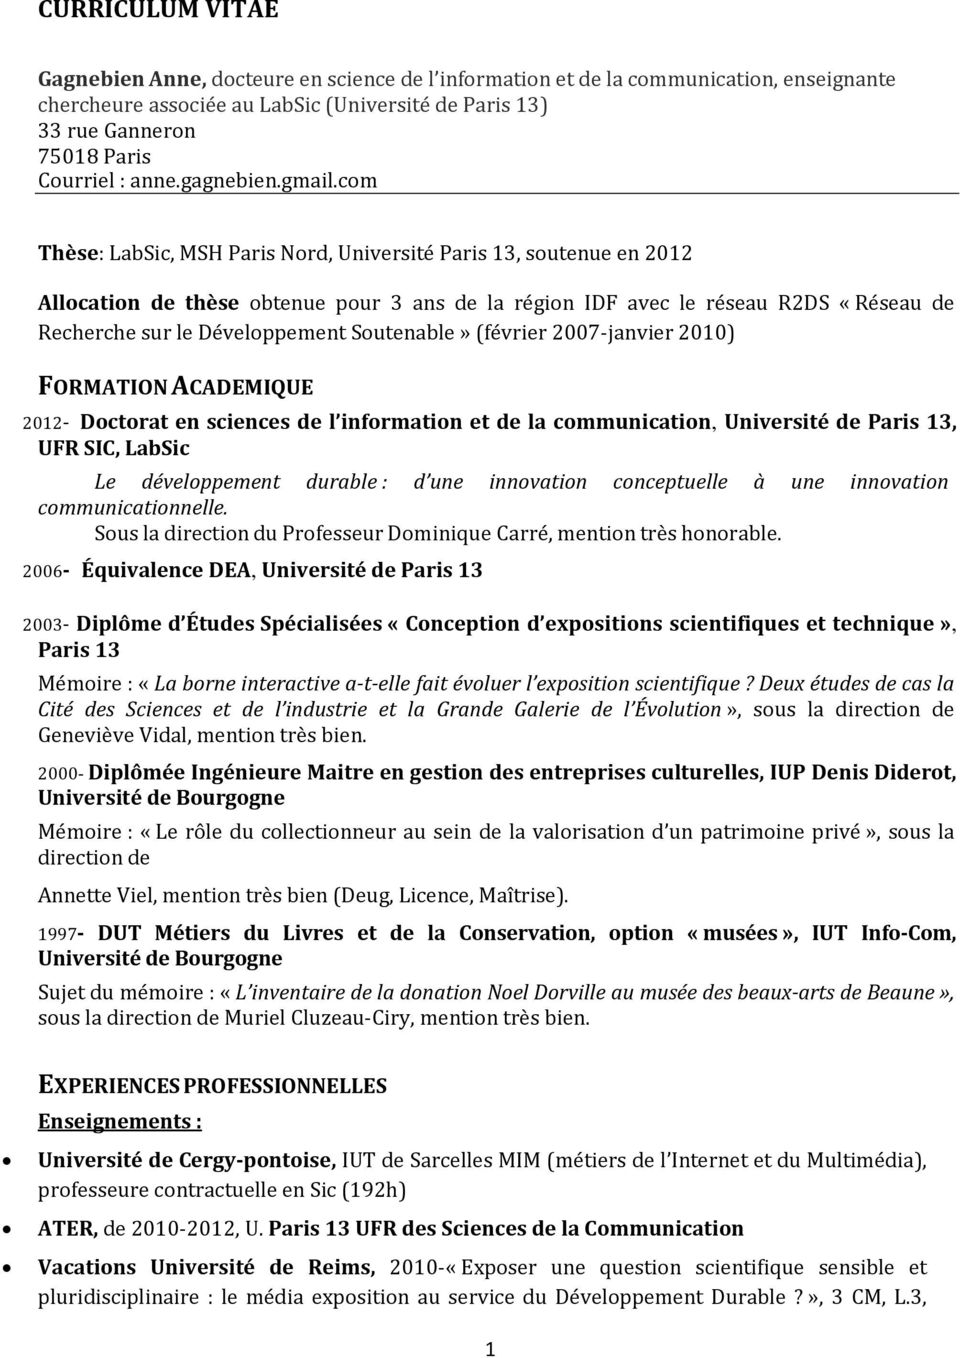 com Thèse: LabSic, MSH Paris Nord, Université Paris 13, soutenue en 2012 Allocation de thèse obtenue pour 3 ans de la région IDF avec le réseau R2DS «Réseau de Recherche sur le Développement